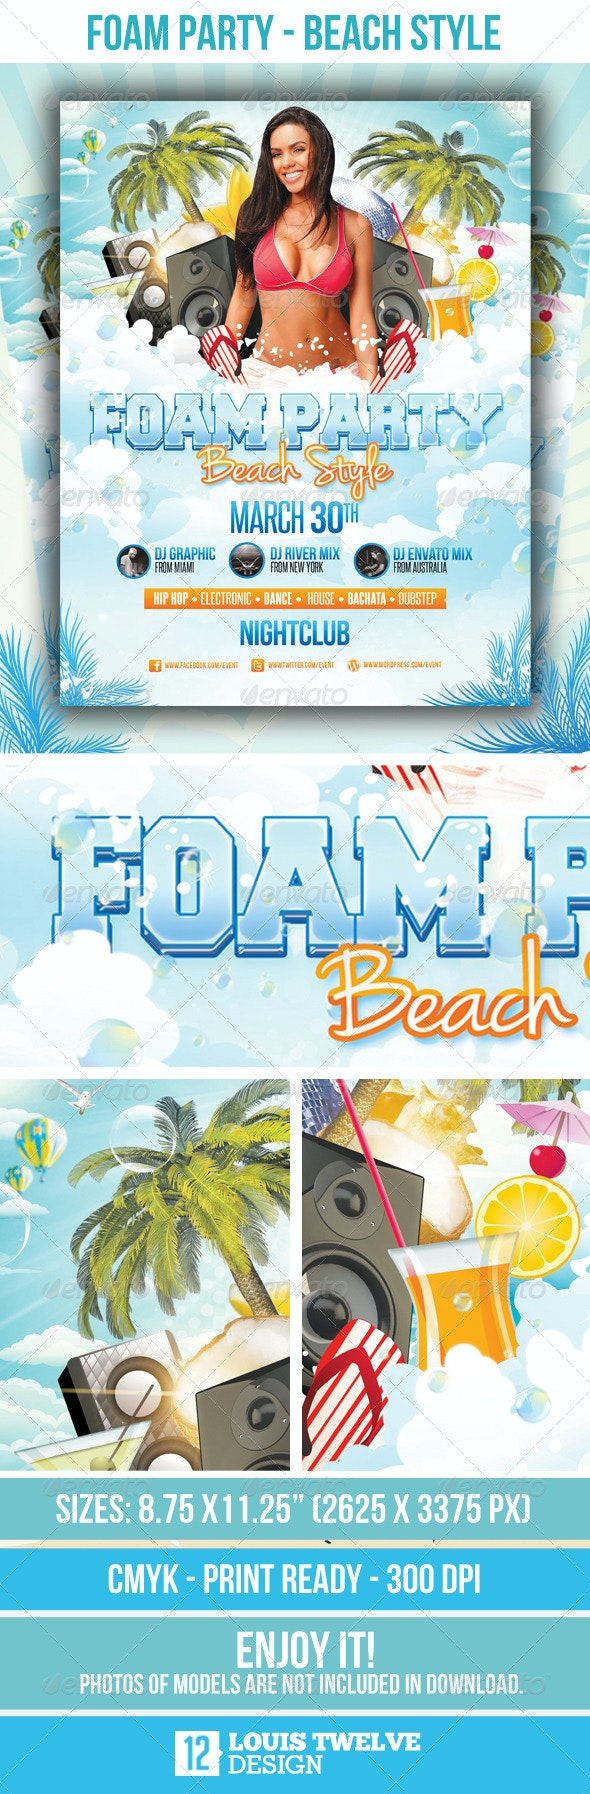 Foam Party Beach Style - Flyer Template - Clubs & Parties Events